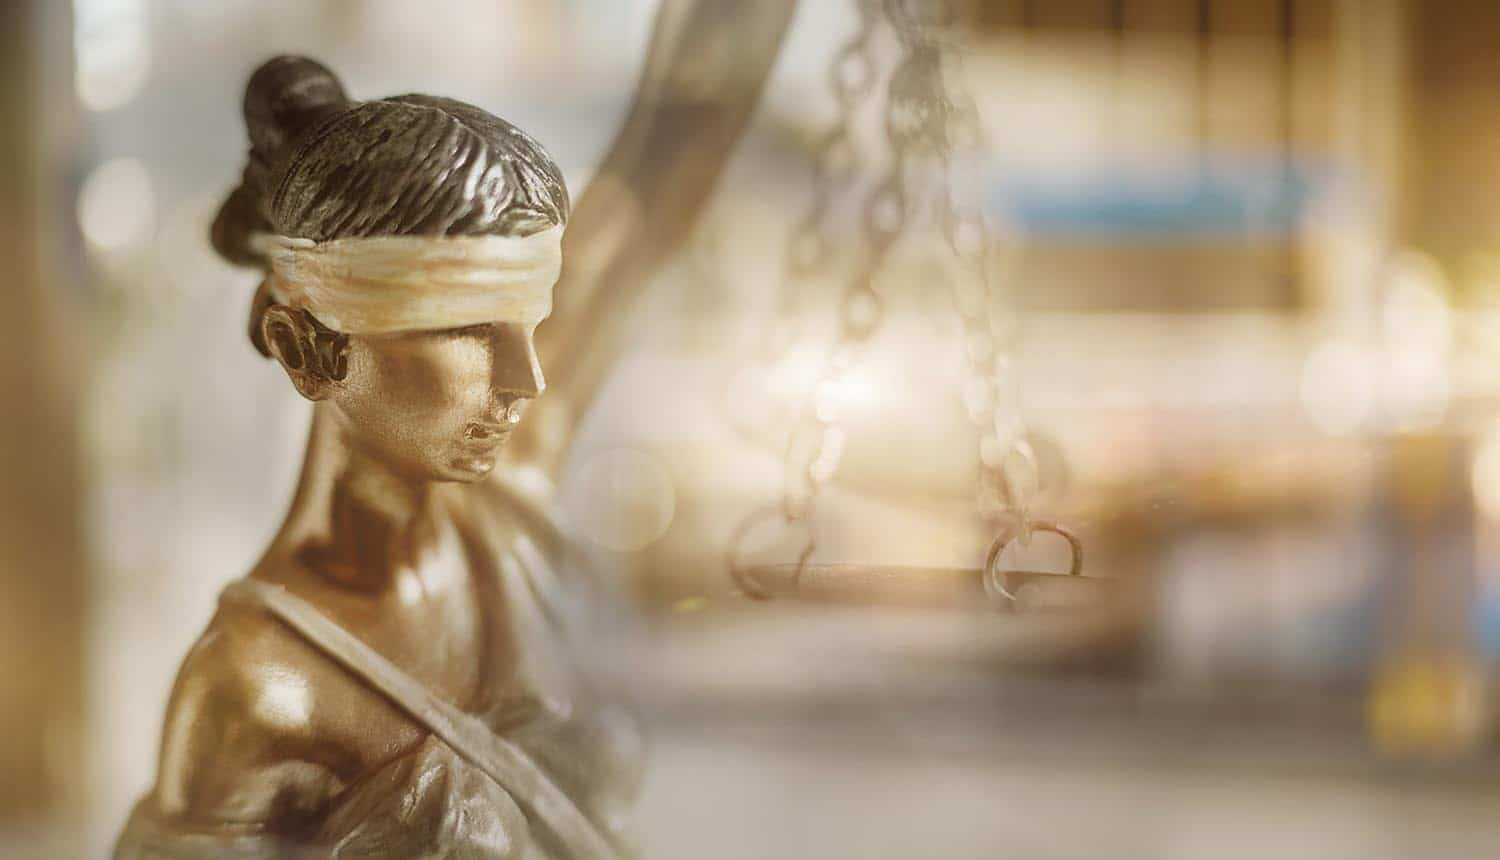 Sculpture of Themis on blurred background showing what to expect from privacy laws in 2020